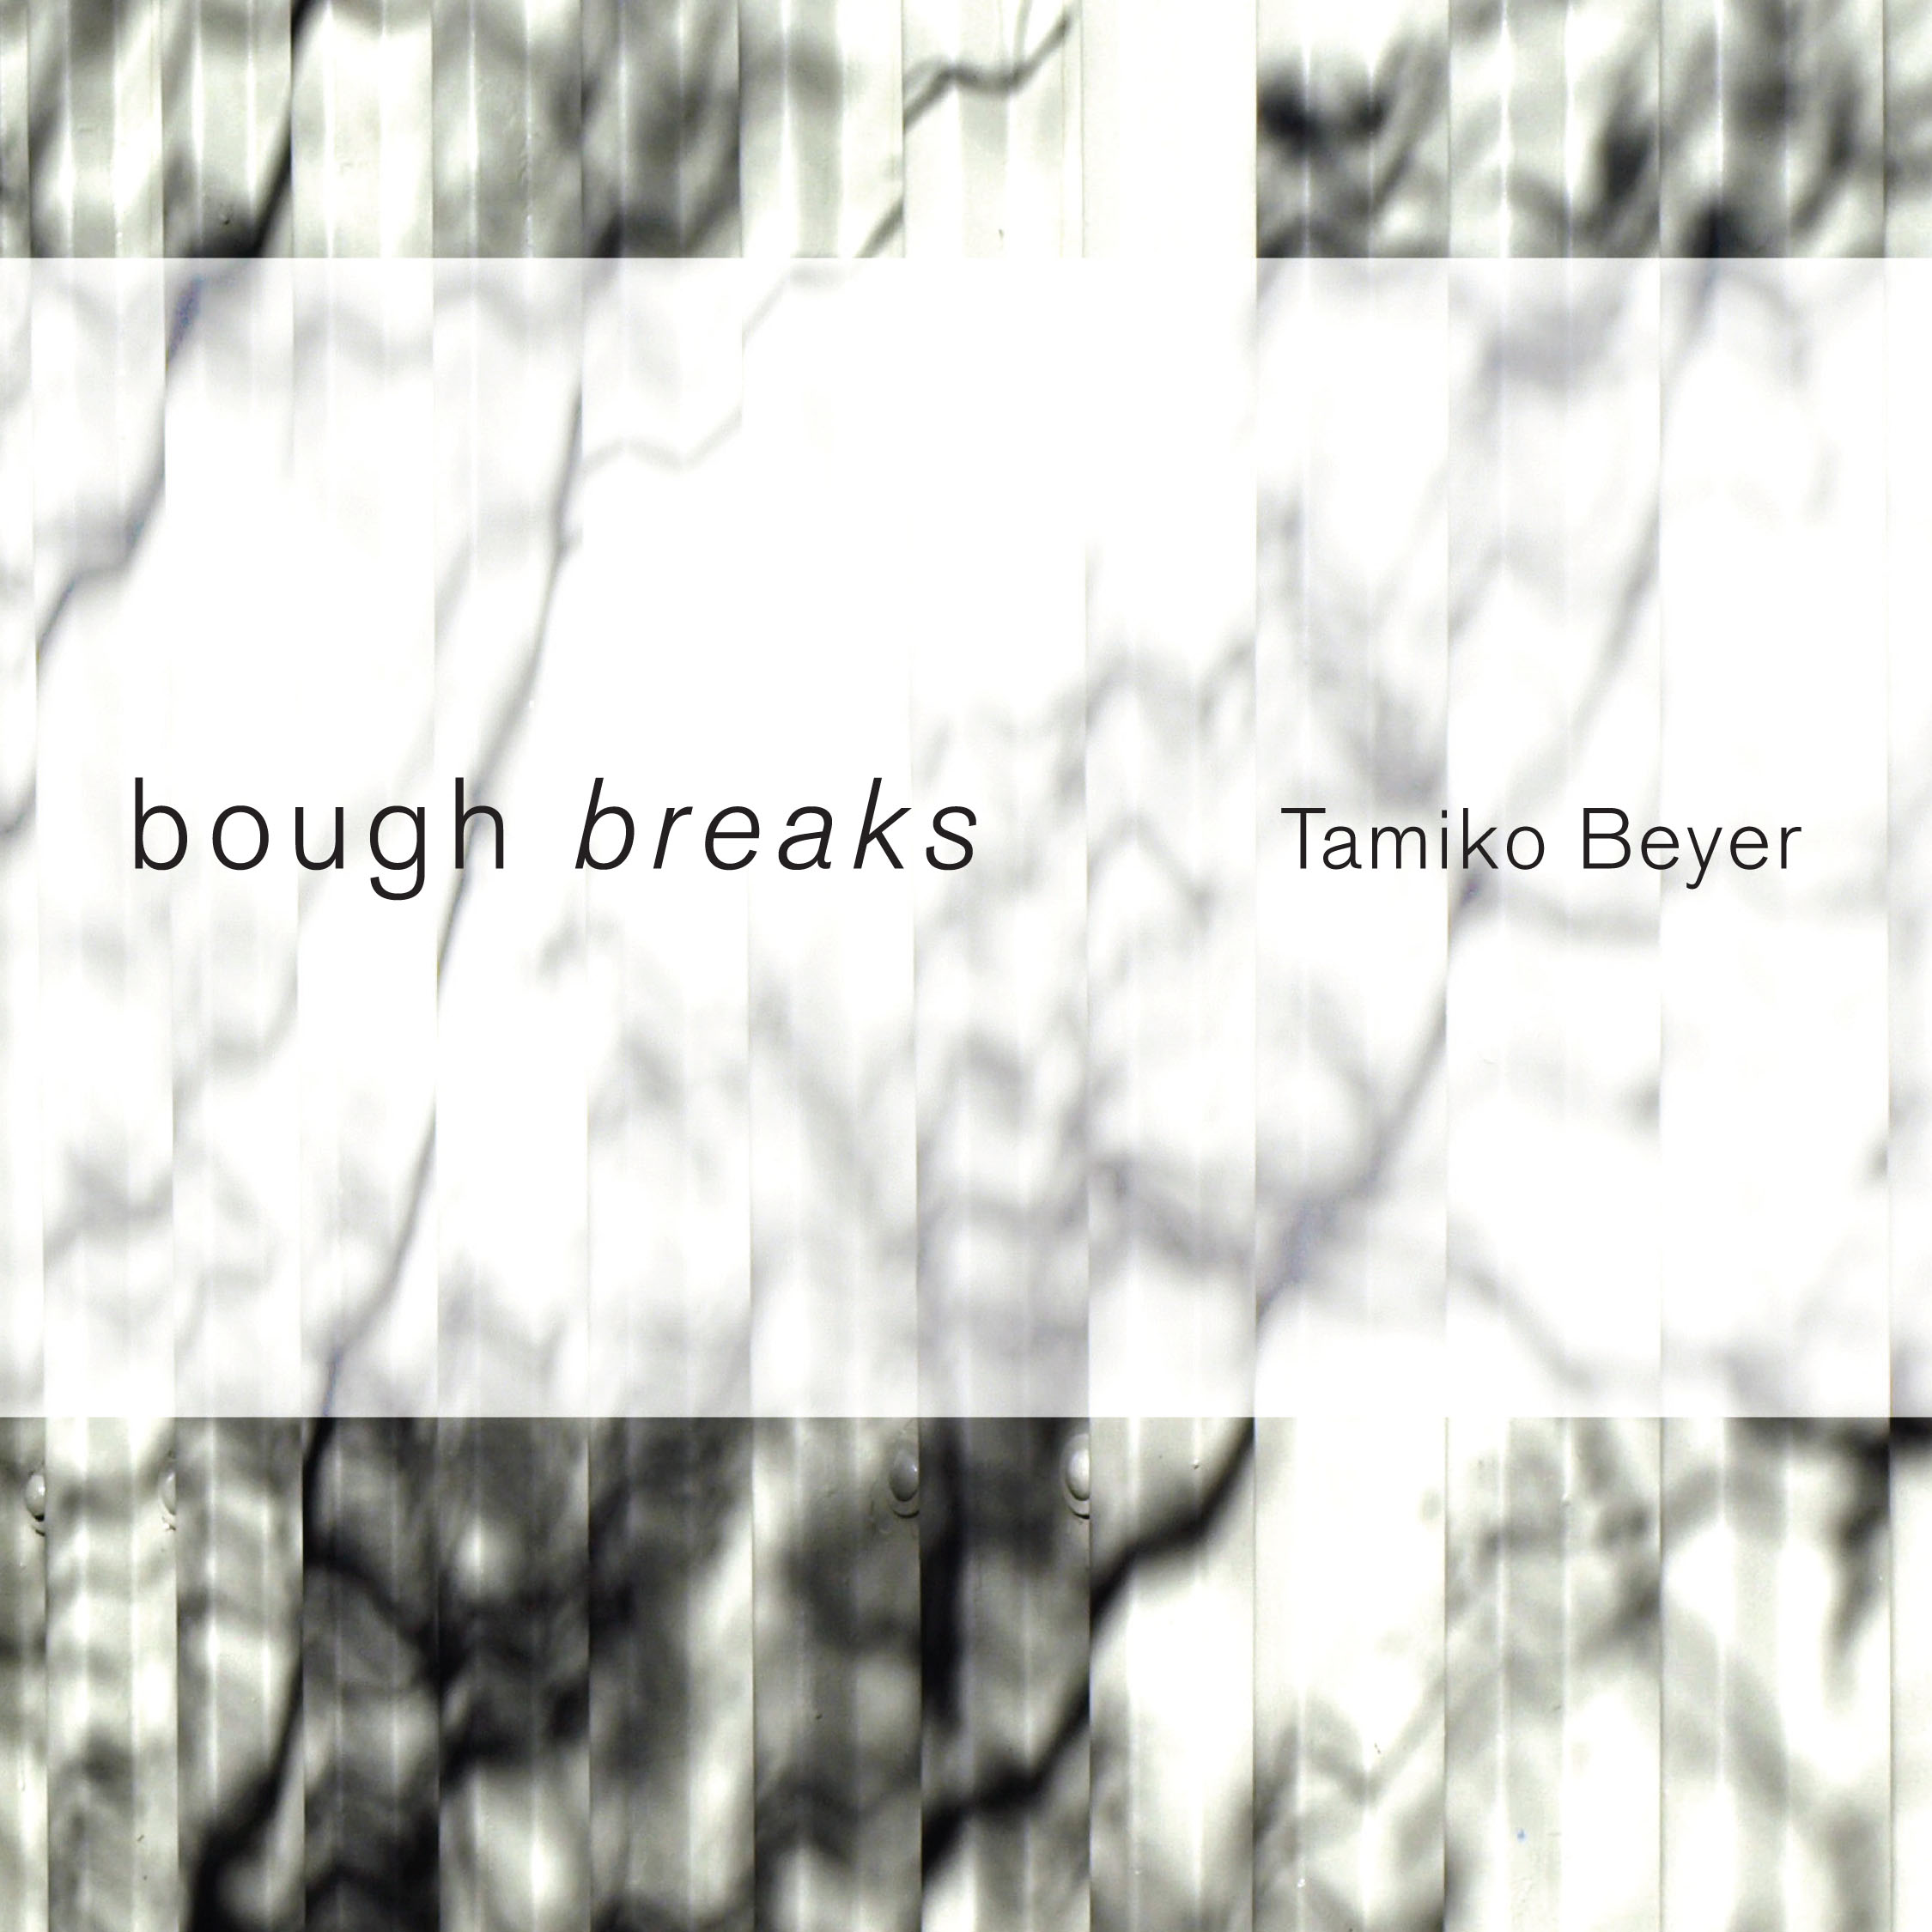 bough breaks by Tamiko Beyer - Cover